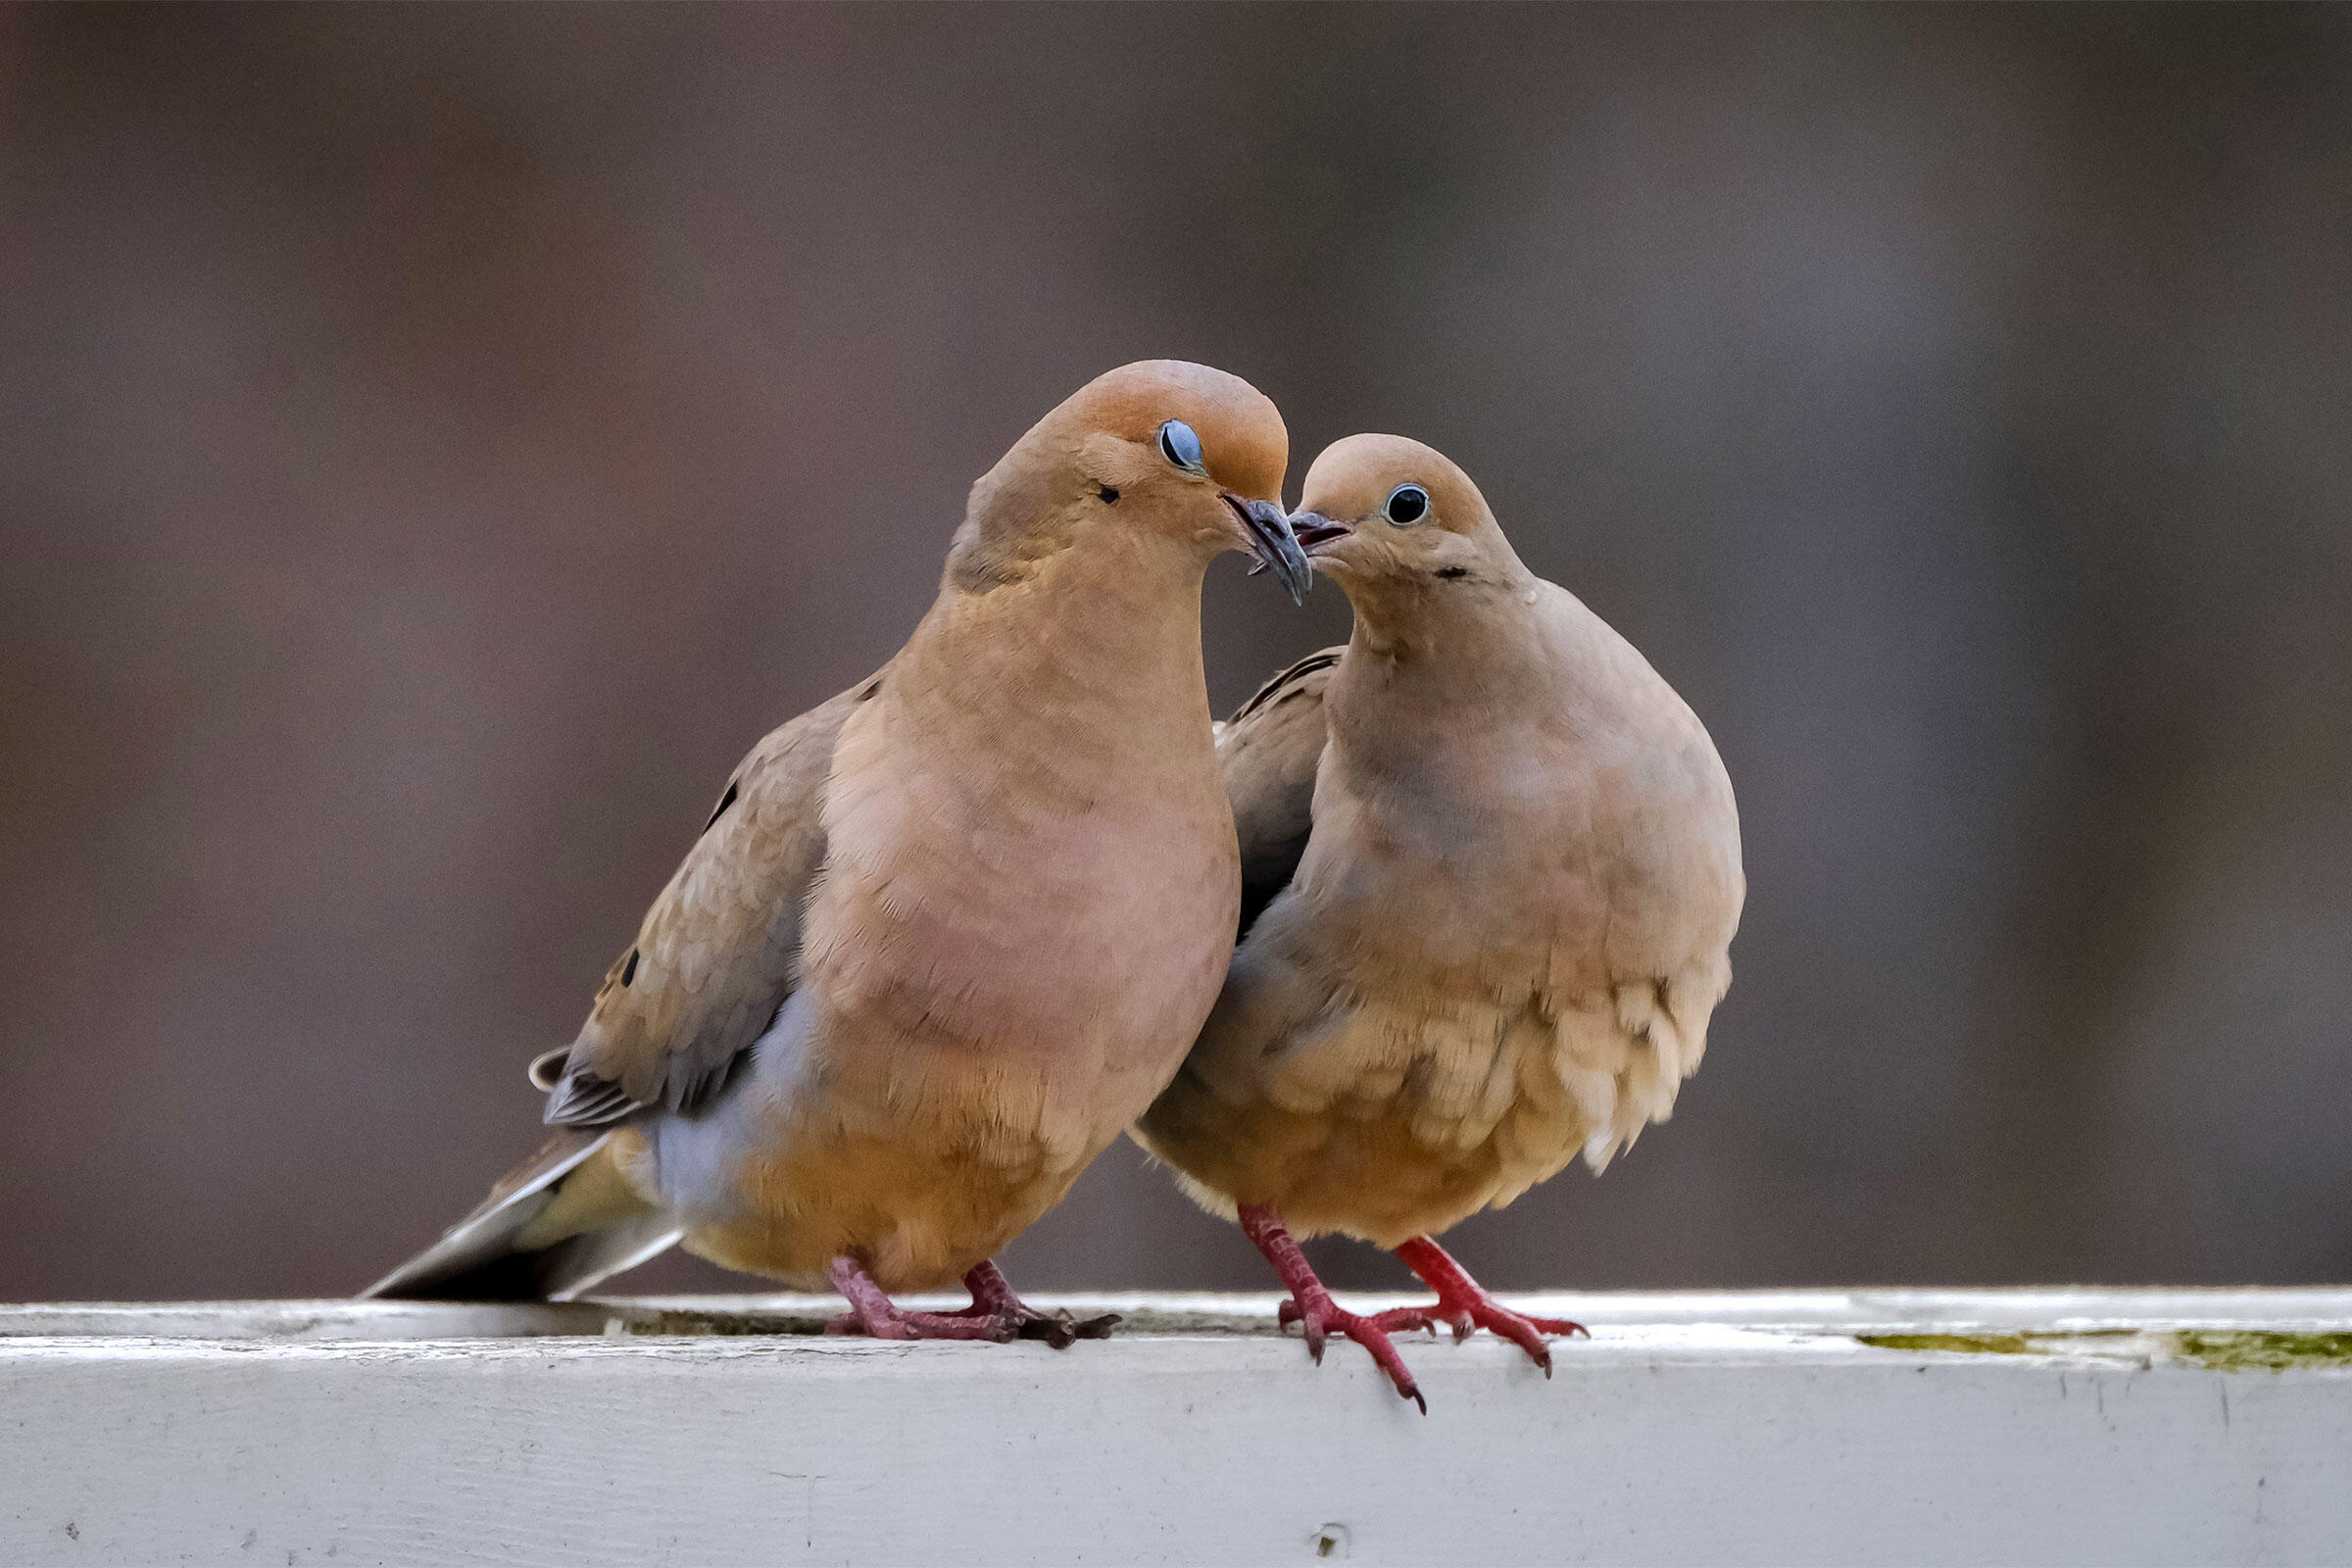 Mourning Doves. Christine Rice, Ontario, Canada